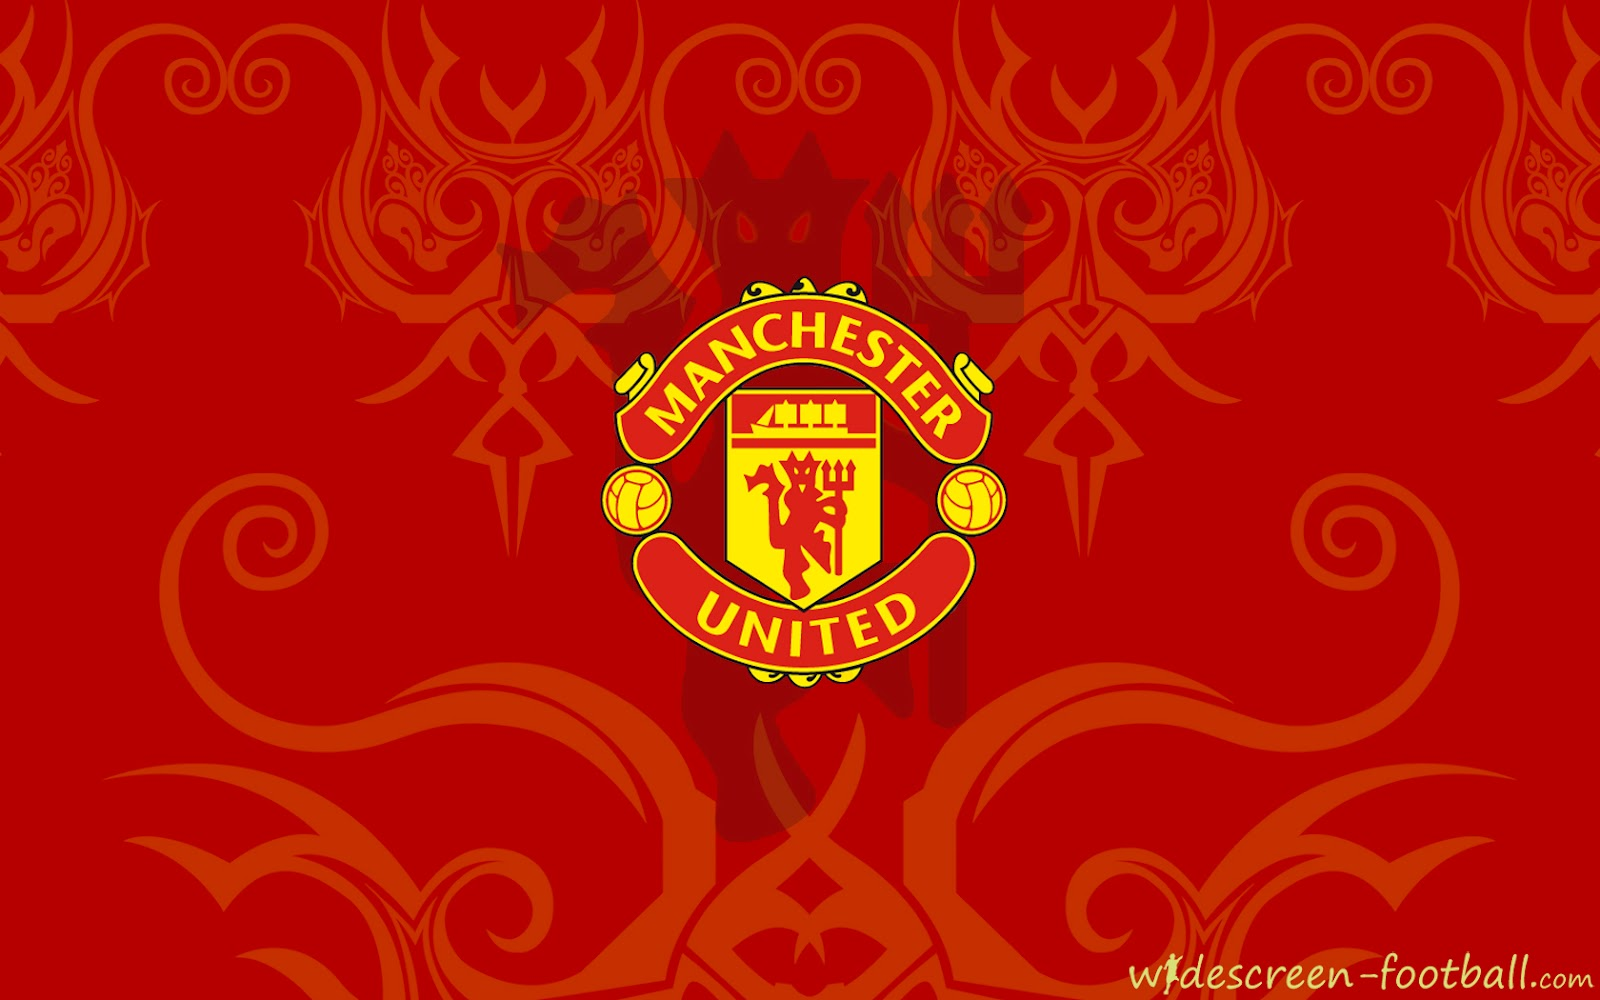 Manchester united beautiful logo wallpaper Manchester United 1600x1000